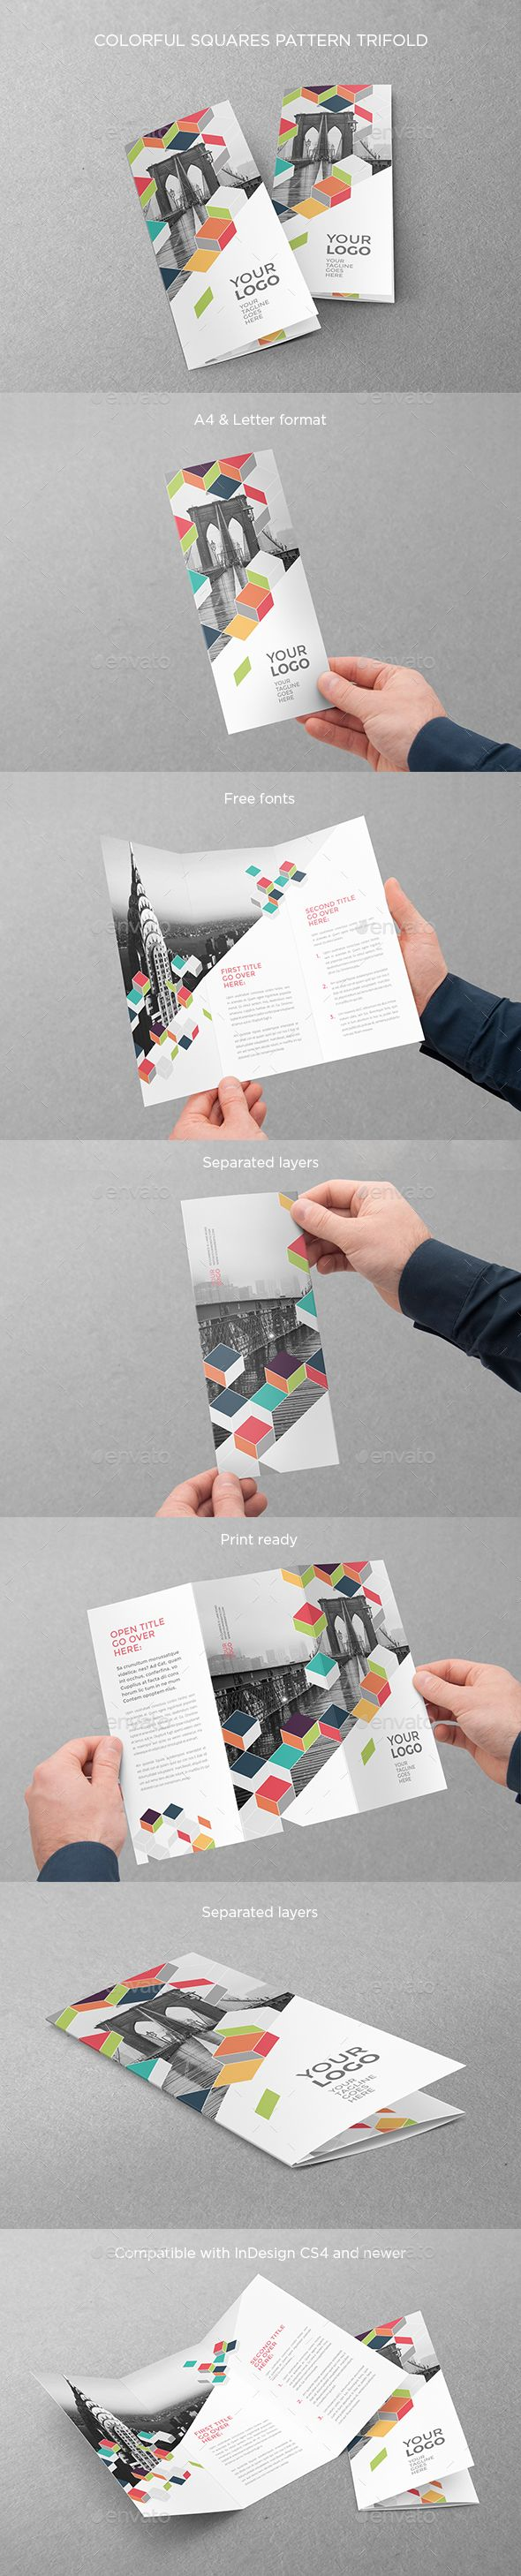 Colorful Squares Pattern Trifold Brochure Template InDesign INDD Download here